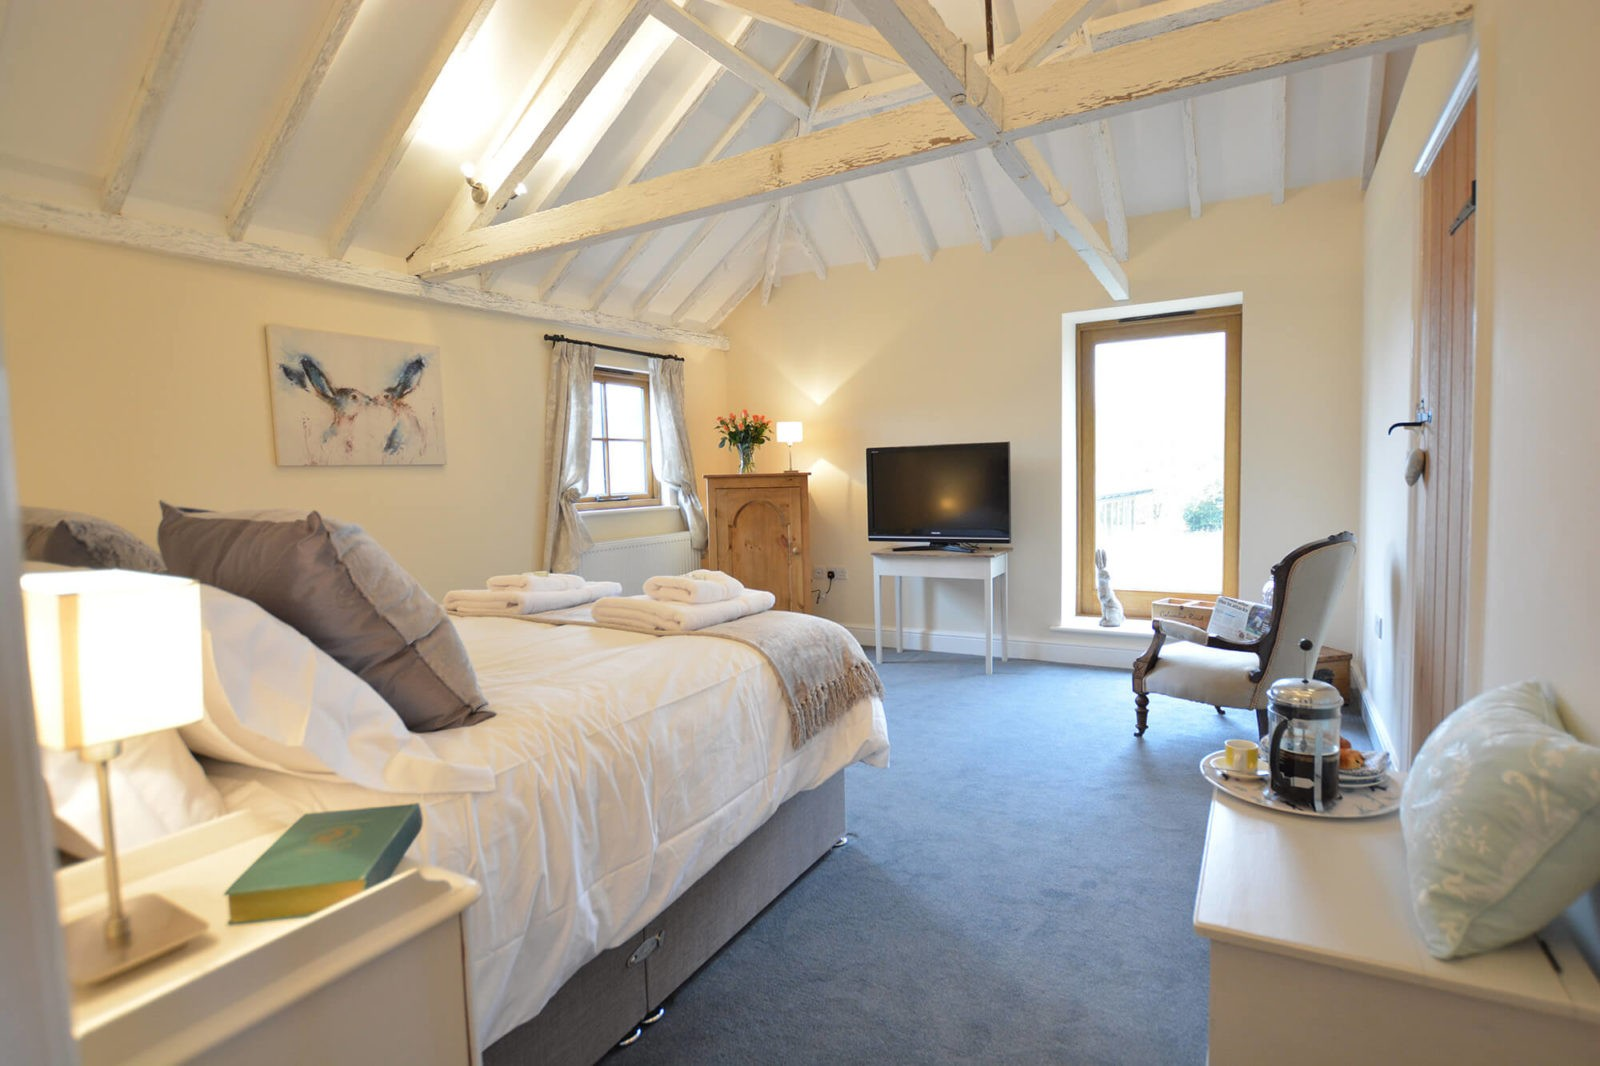 The Granary at Red House Farm Master Bedroom